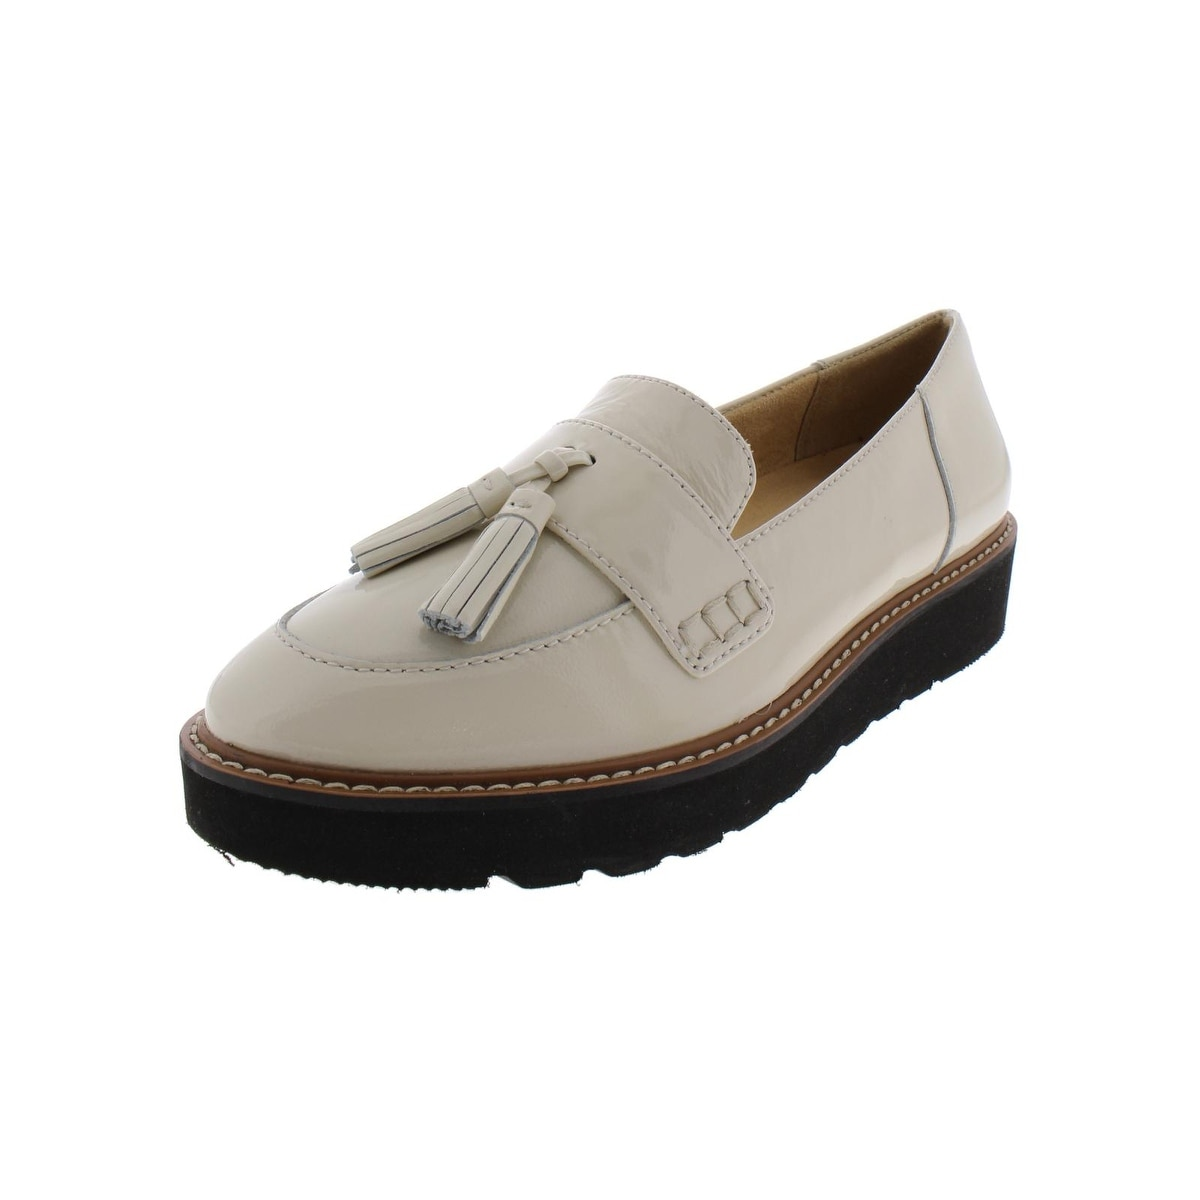 d1d8f16ac7b New Products - Naturalizer Women s Shoes